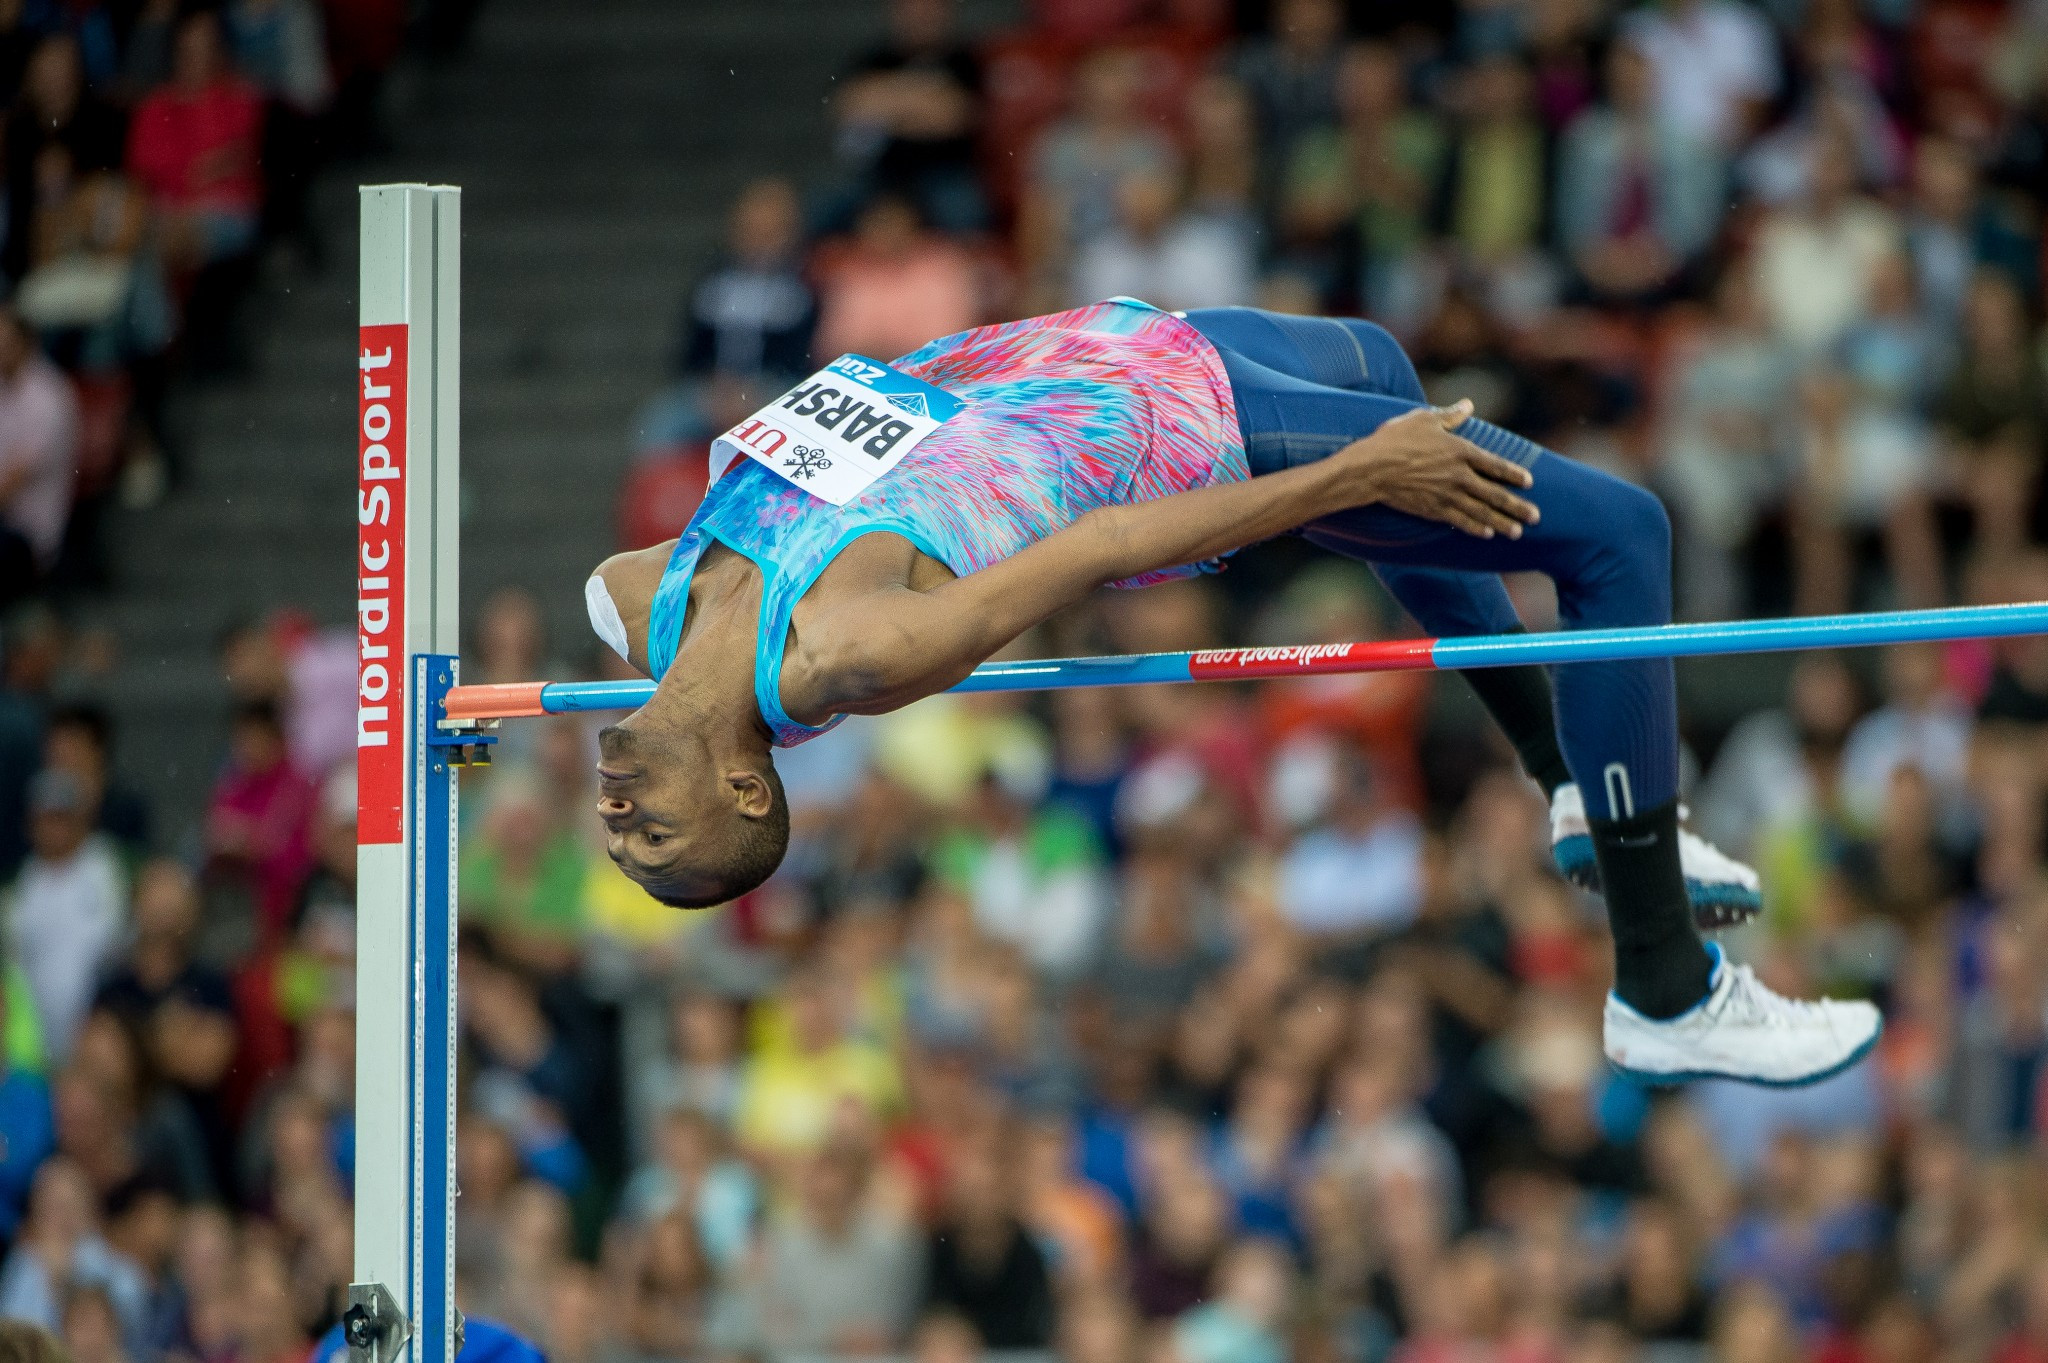 Qatar's Mutaz Essa Barshim was an easy winner of the high jump ©Getty Images